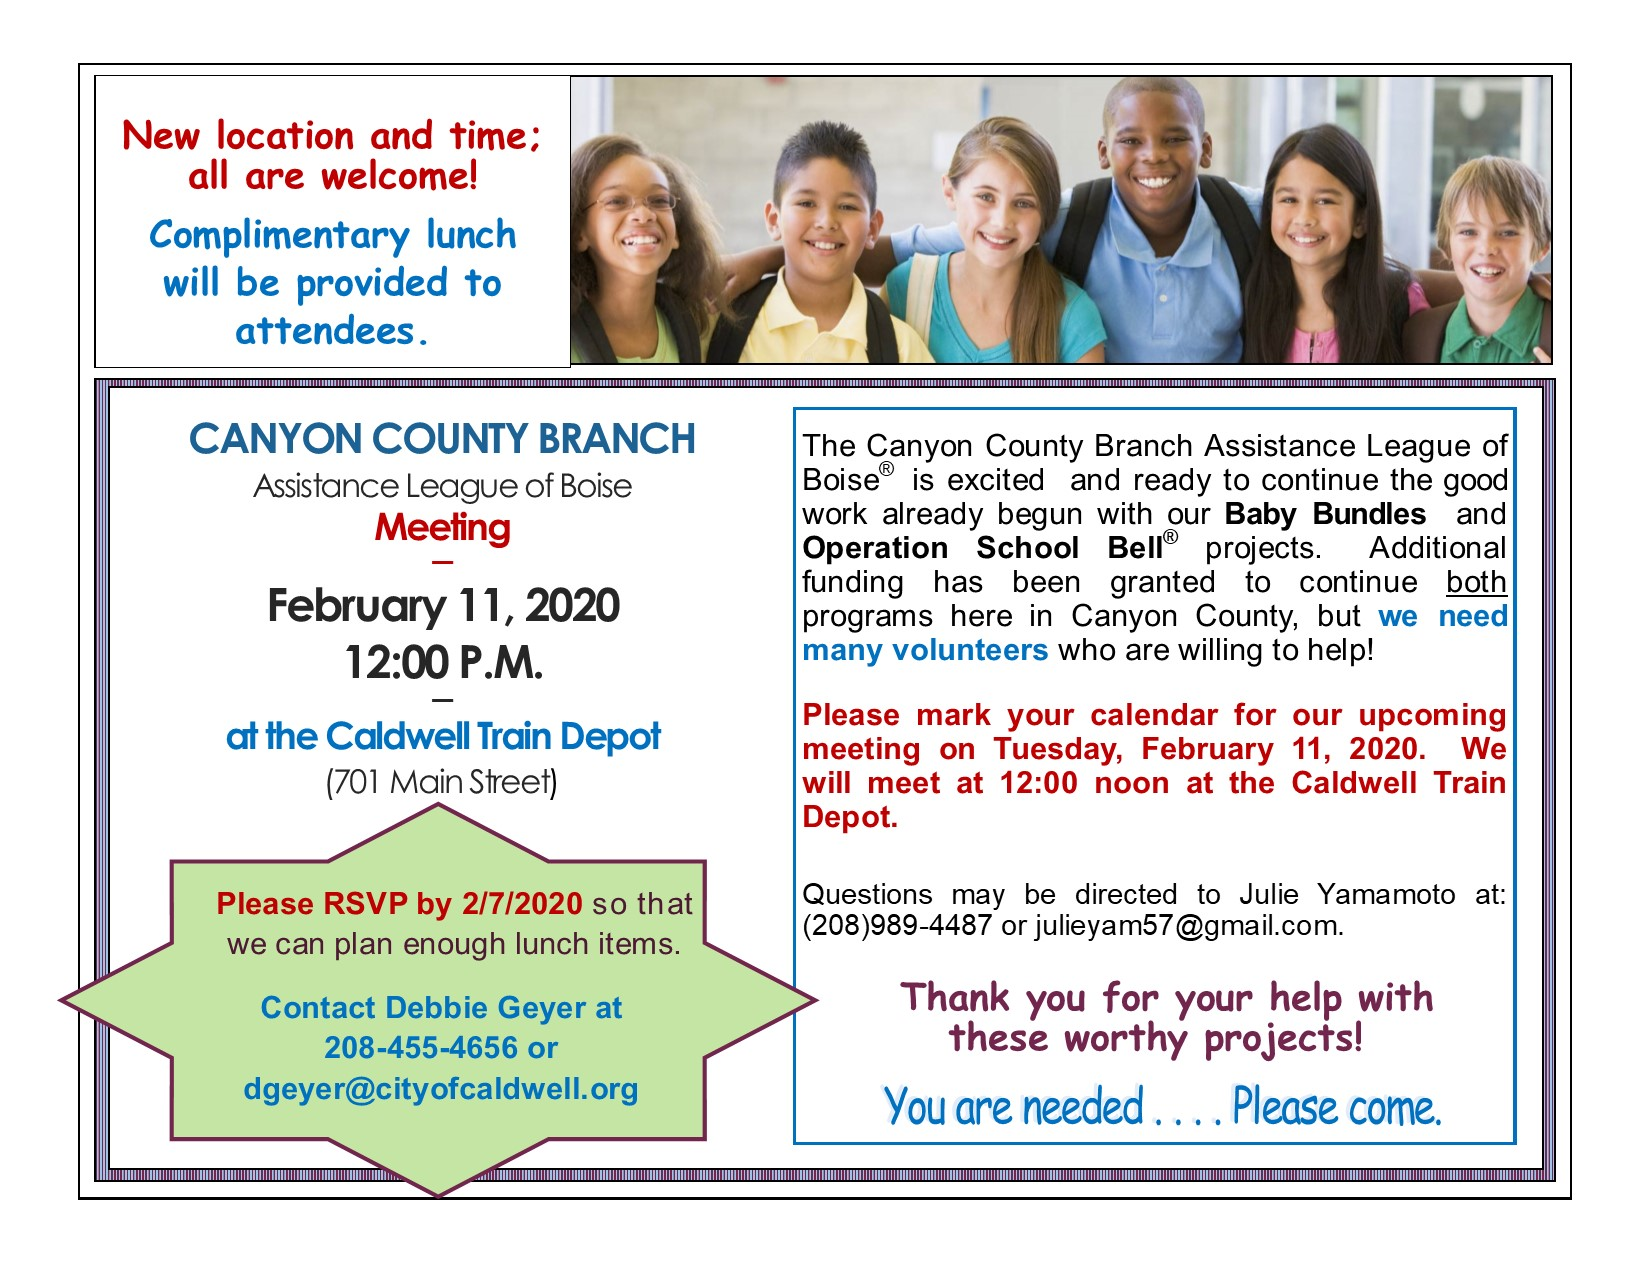 Assistance League meeting, Canyon County branch, 2/11/2020 from 12:00 noon - 2:00 pm